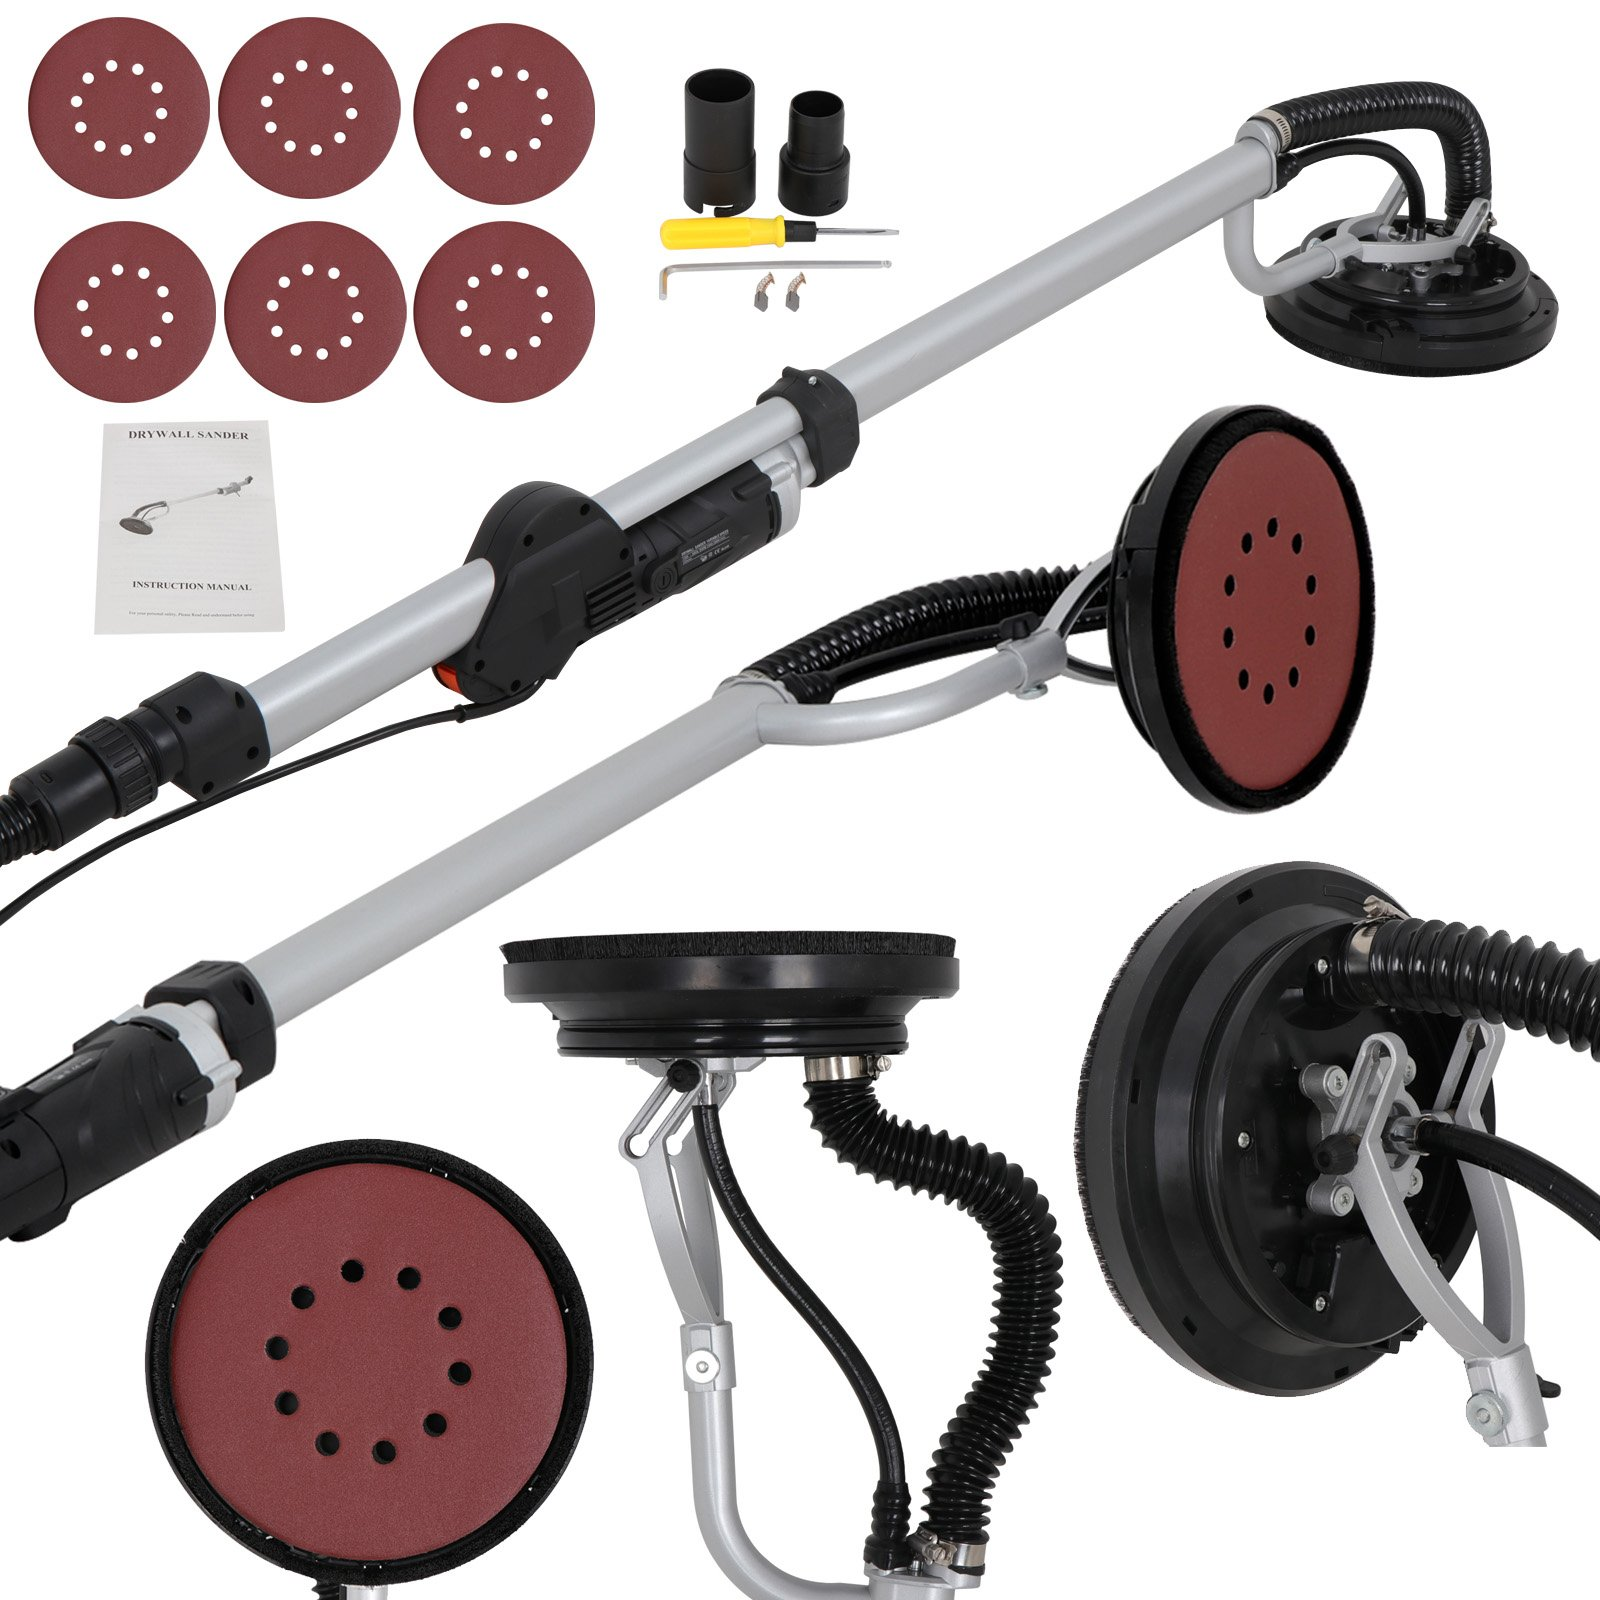 ZENY 800W Drywall Sander, Electric Drywall Sander with 6 Variable Speeds & 6 Sand Pads by ZENY